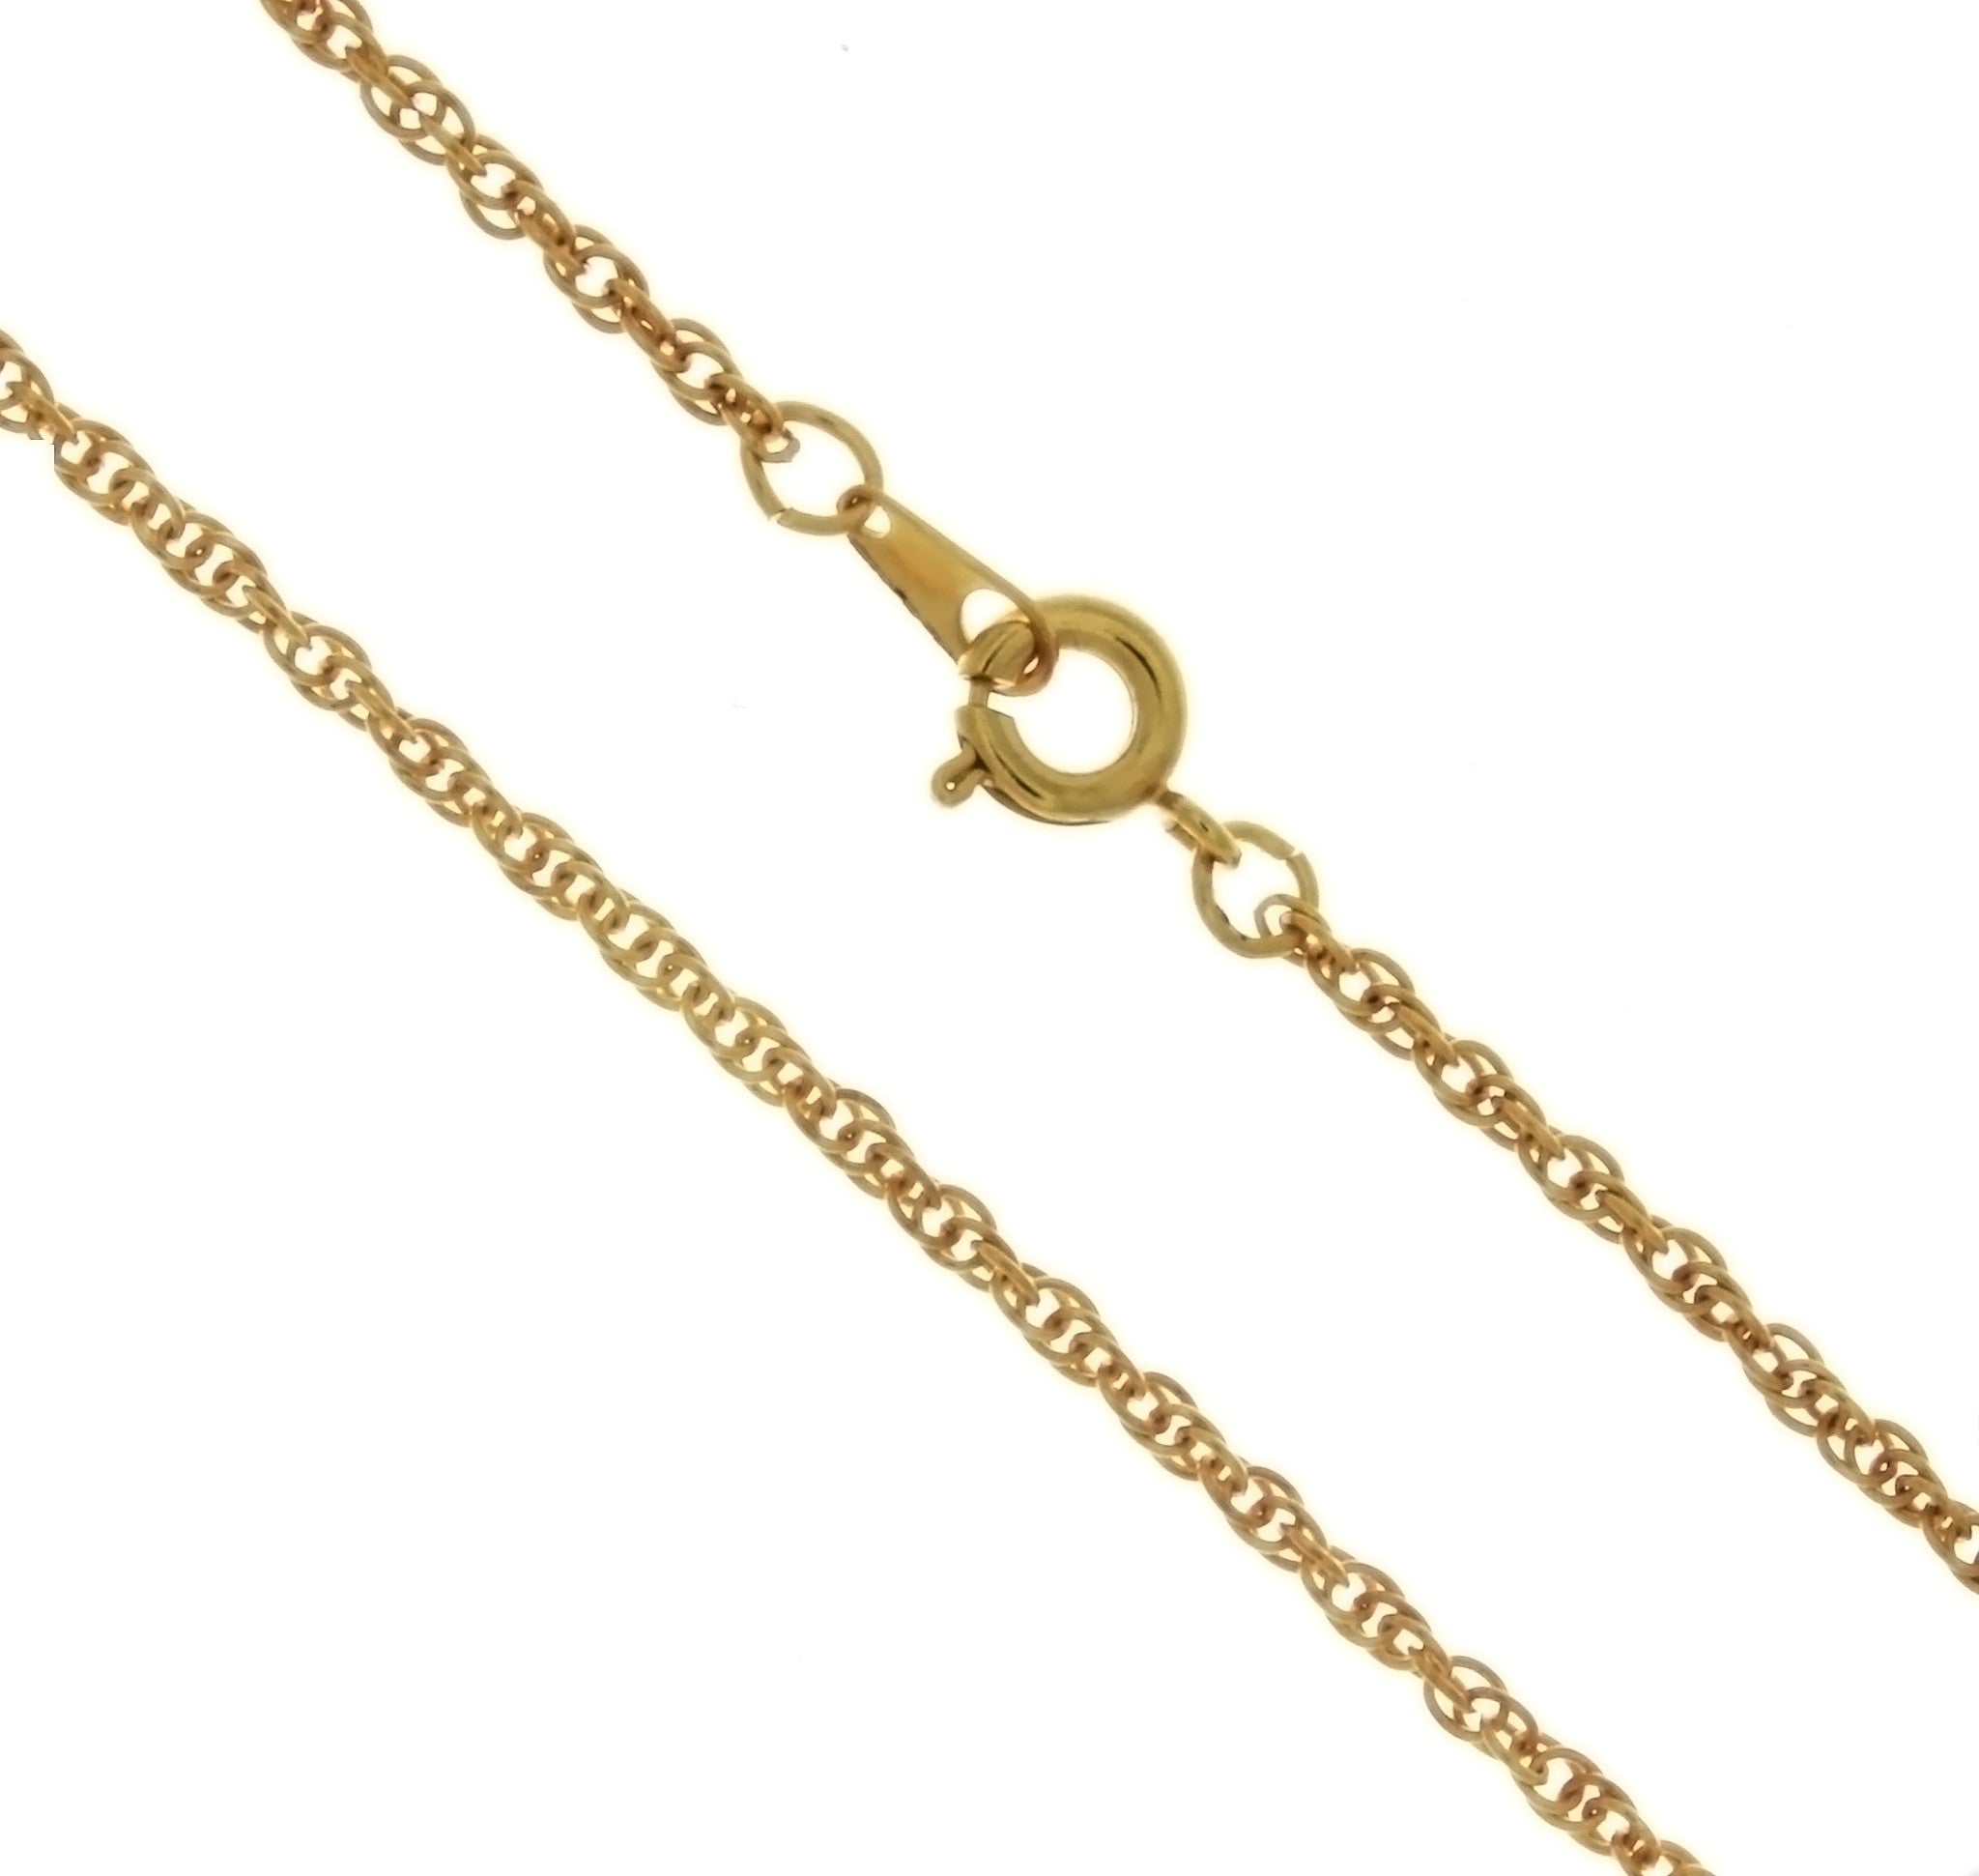 CHAIN NECKLACE ROPE GOLD 1.9 MM X 18 IN (DOZ)